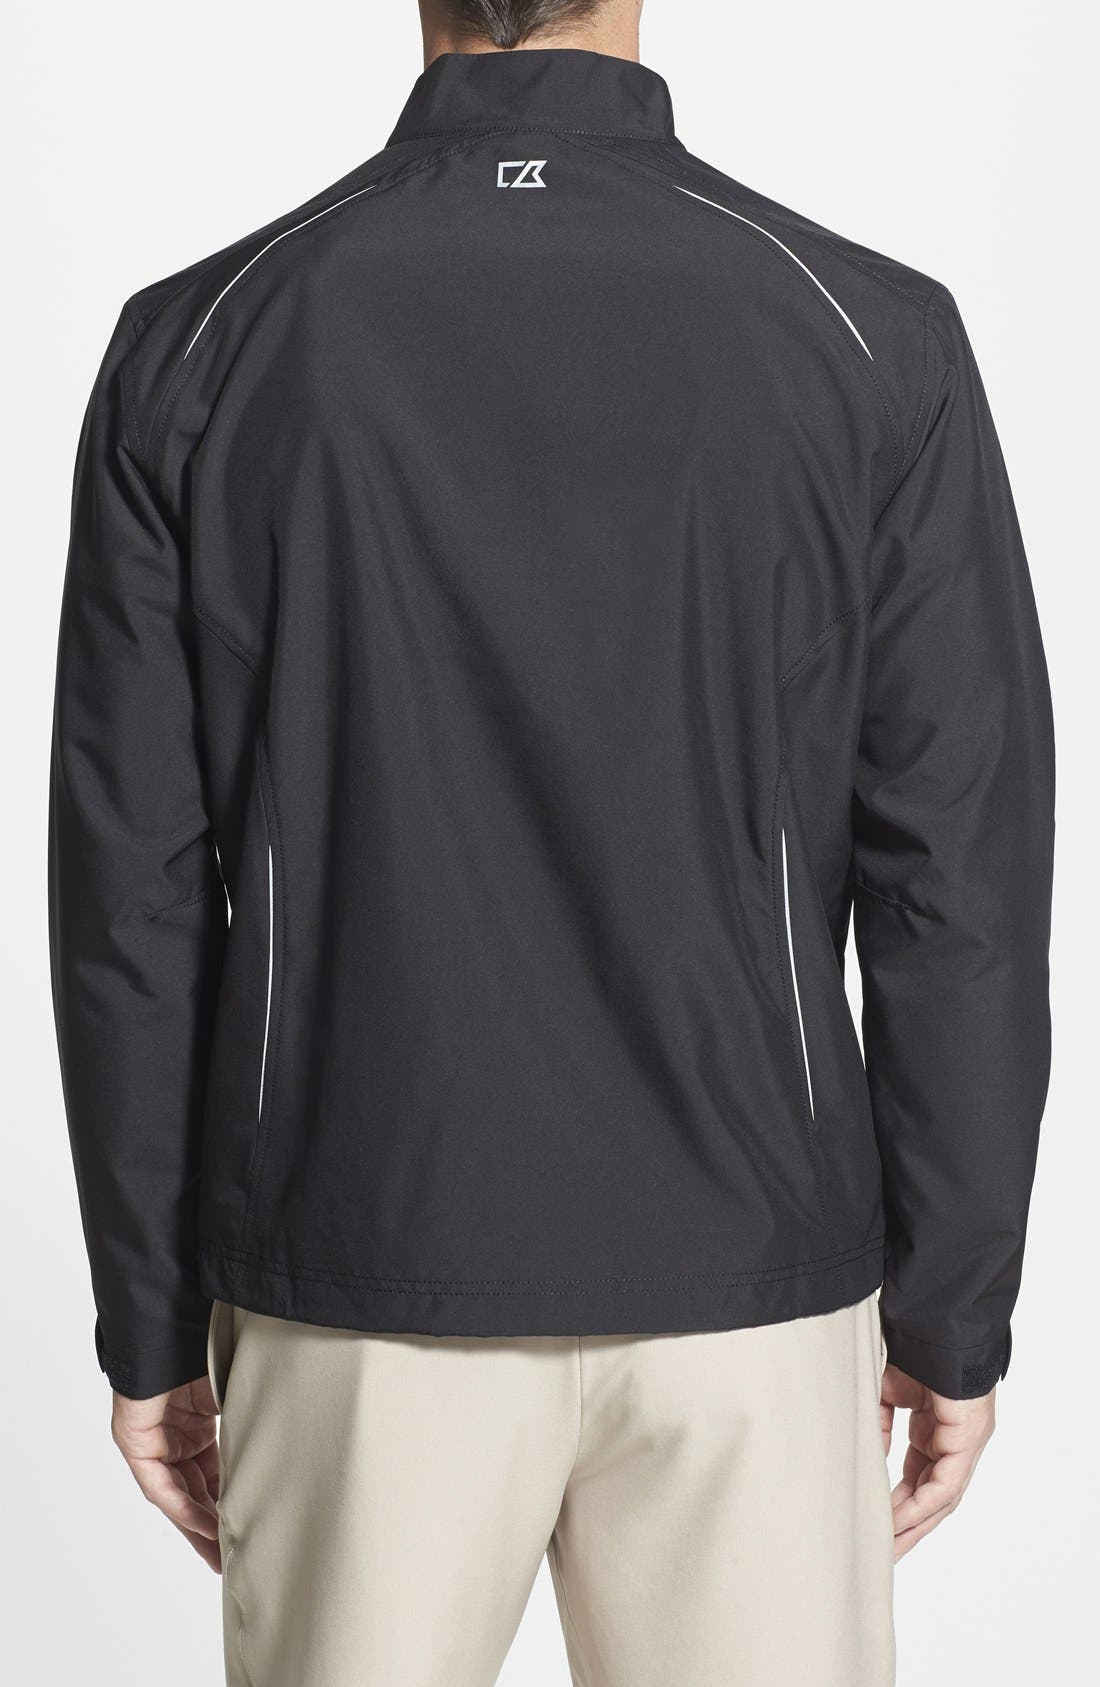 Atlanta Falcons - Beacon WeatherTec Wind & Water Resistant Jacket,                             Alternate thumbnail 2, color,                             001